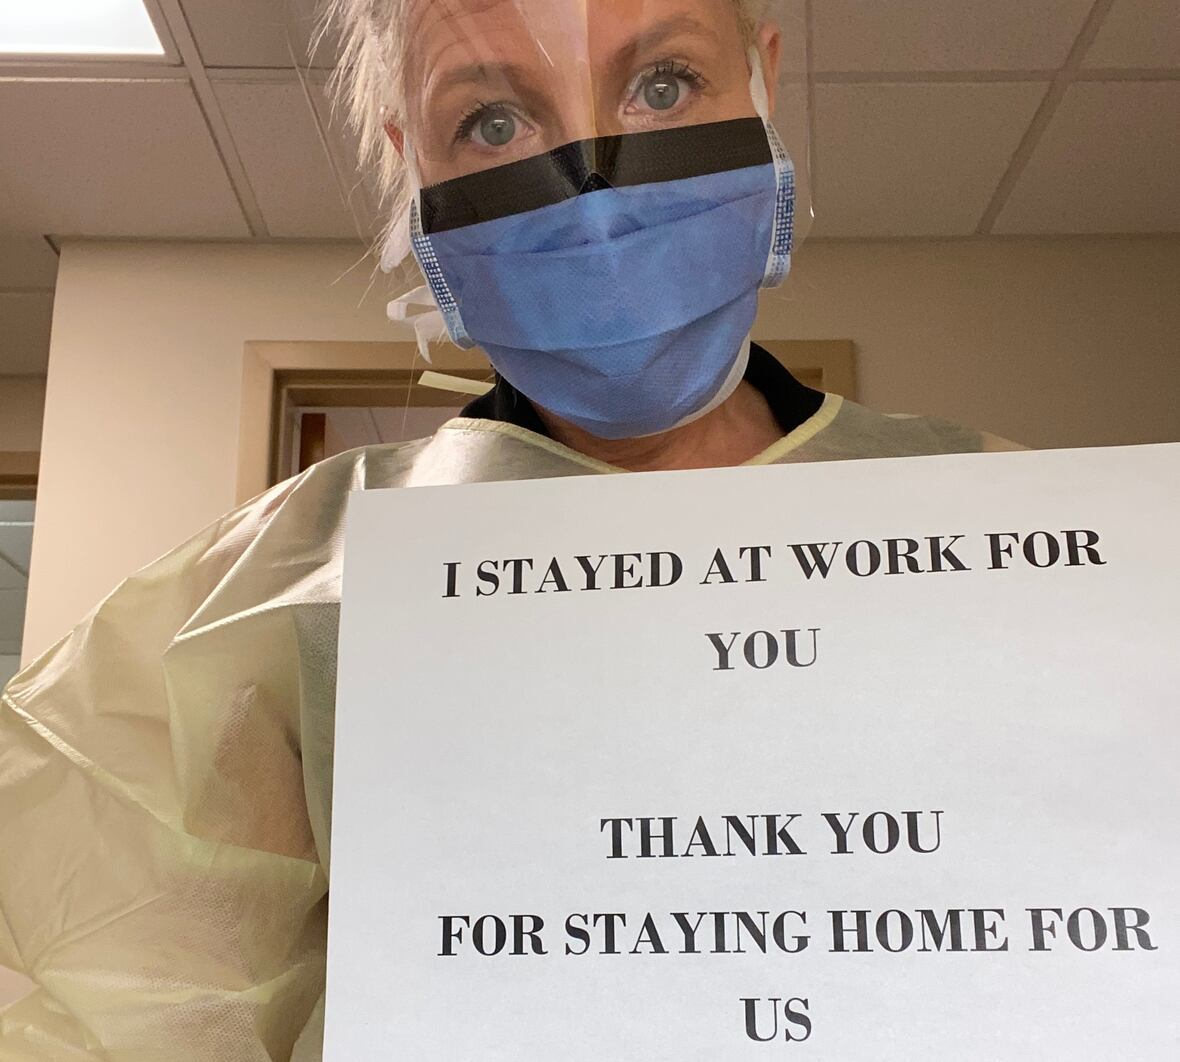 The spouse of an occupational health nurse says front-line workers are putting patients first, so the public should do its best to prevent them from getting sick. (Submitted by Chris Marshall)